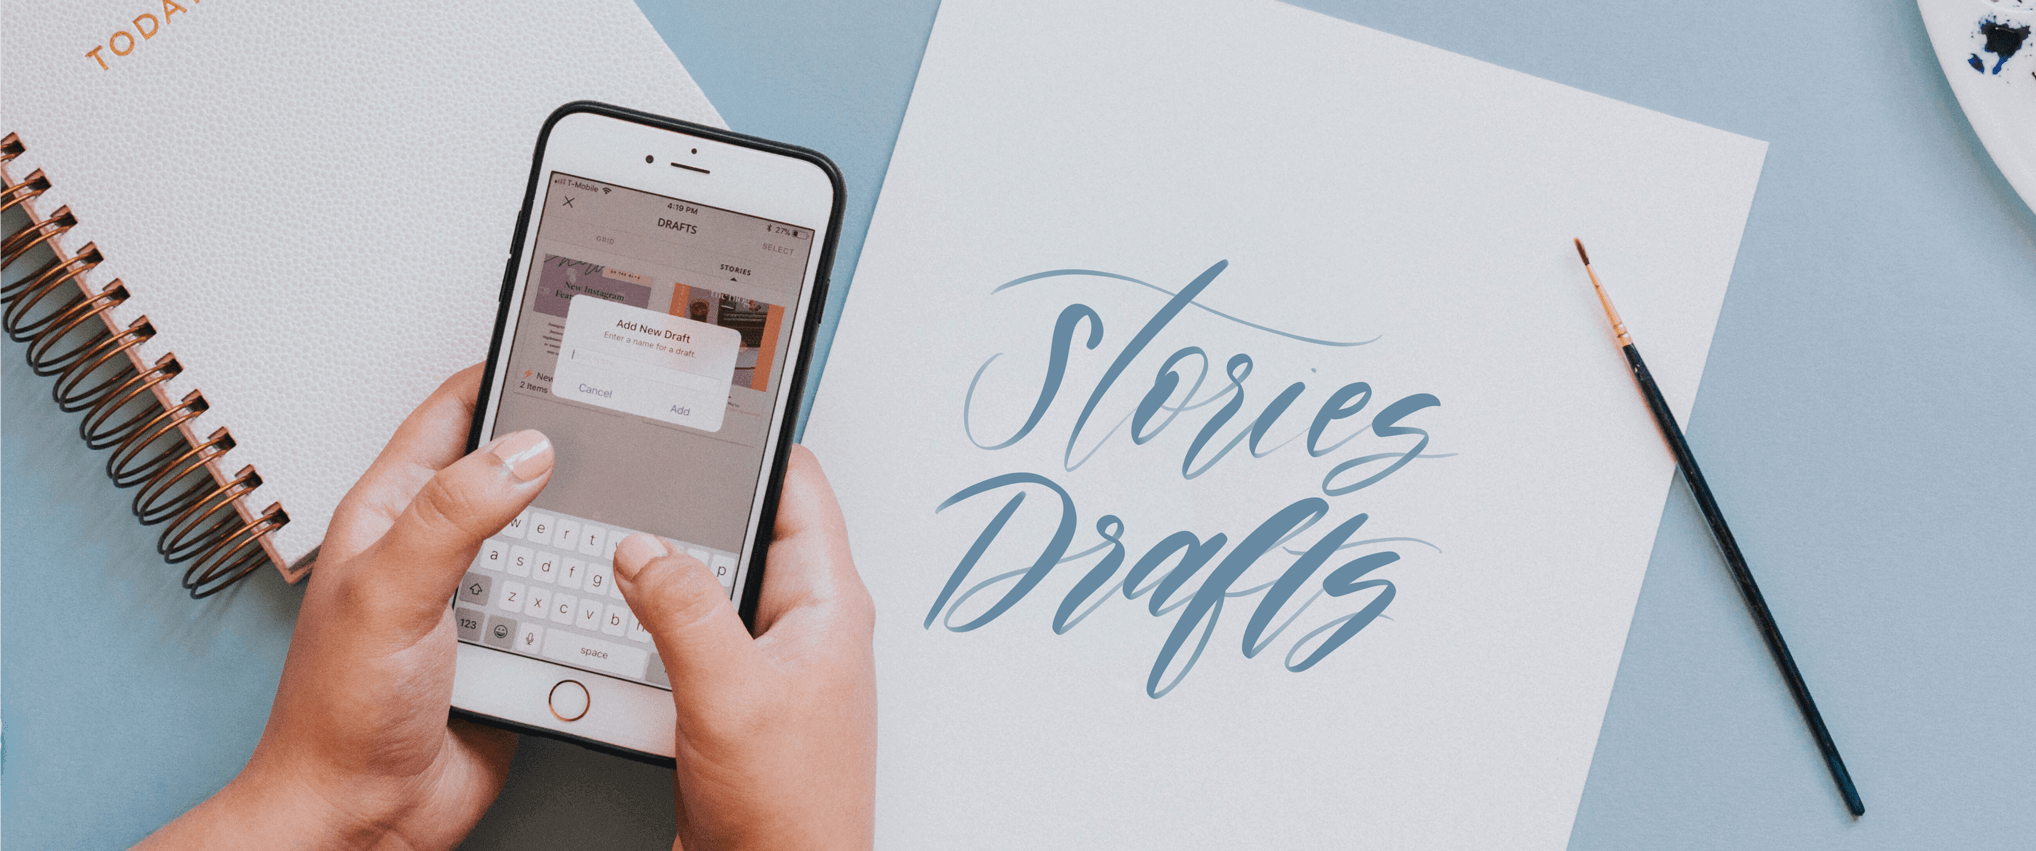 New Feature: Stories Drafts